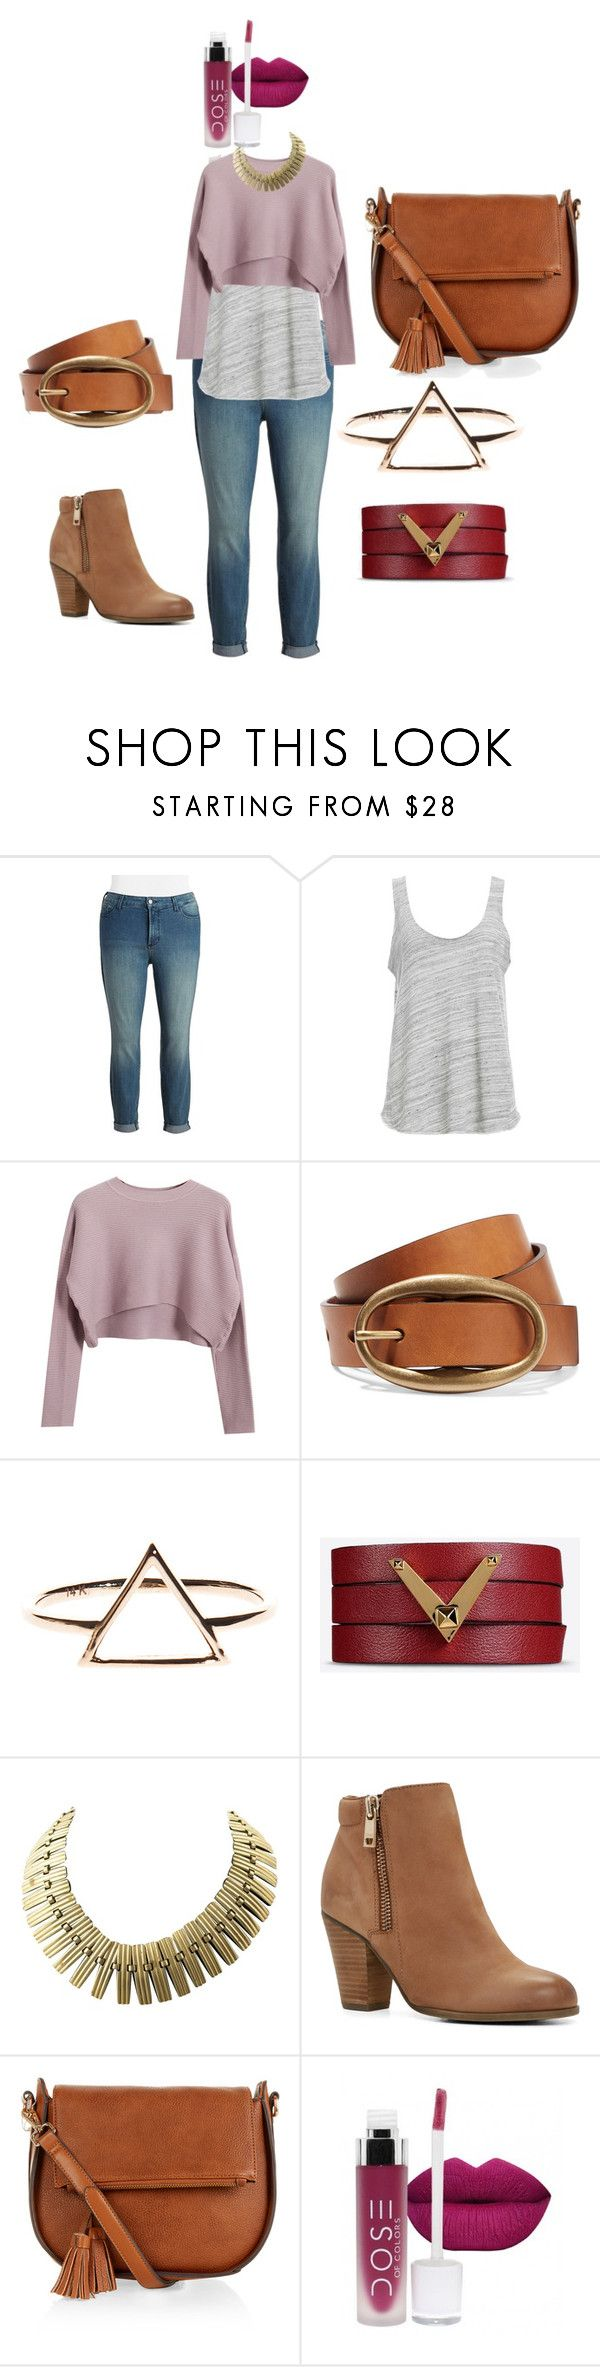 """Boho Chick Plussize Outfit"" by migalowa on Polyvore featuring NYDJ, Project Social T, Chicnova Fashion, Valentino, ALDO, Monsoon, women's clothing, women's fashion, women and female"